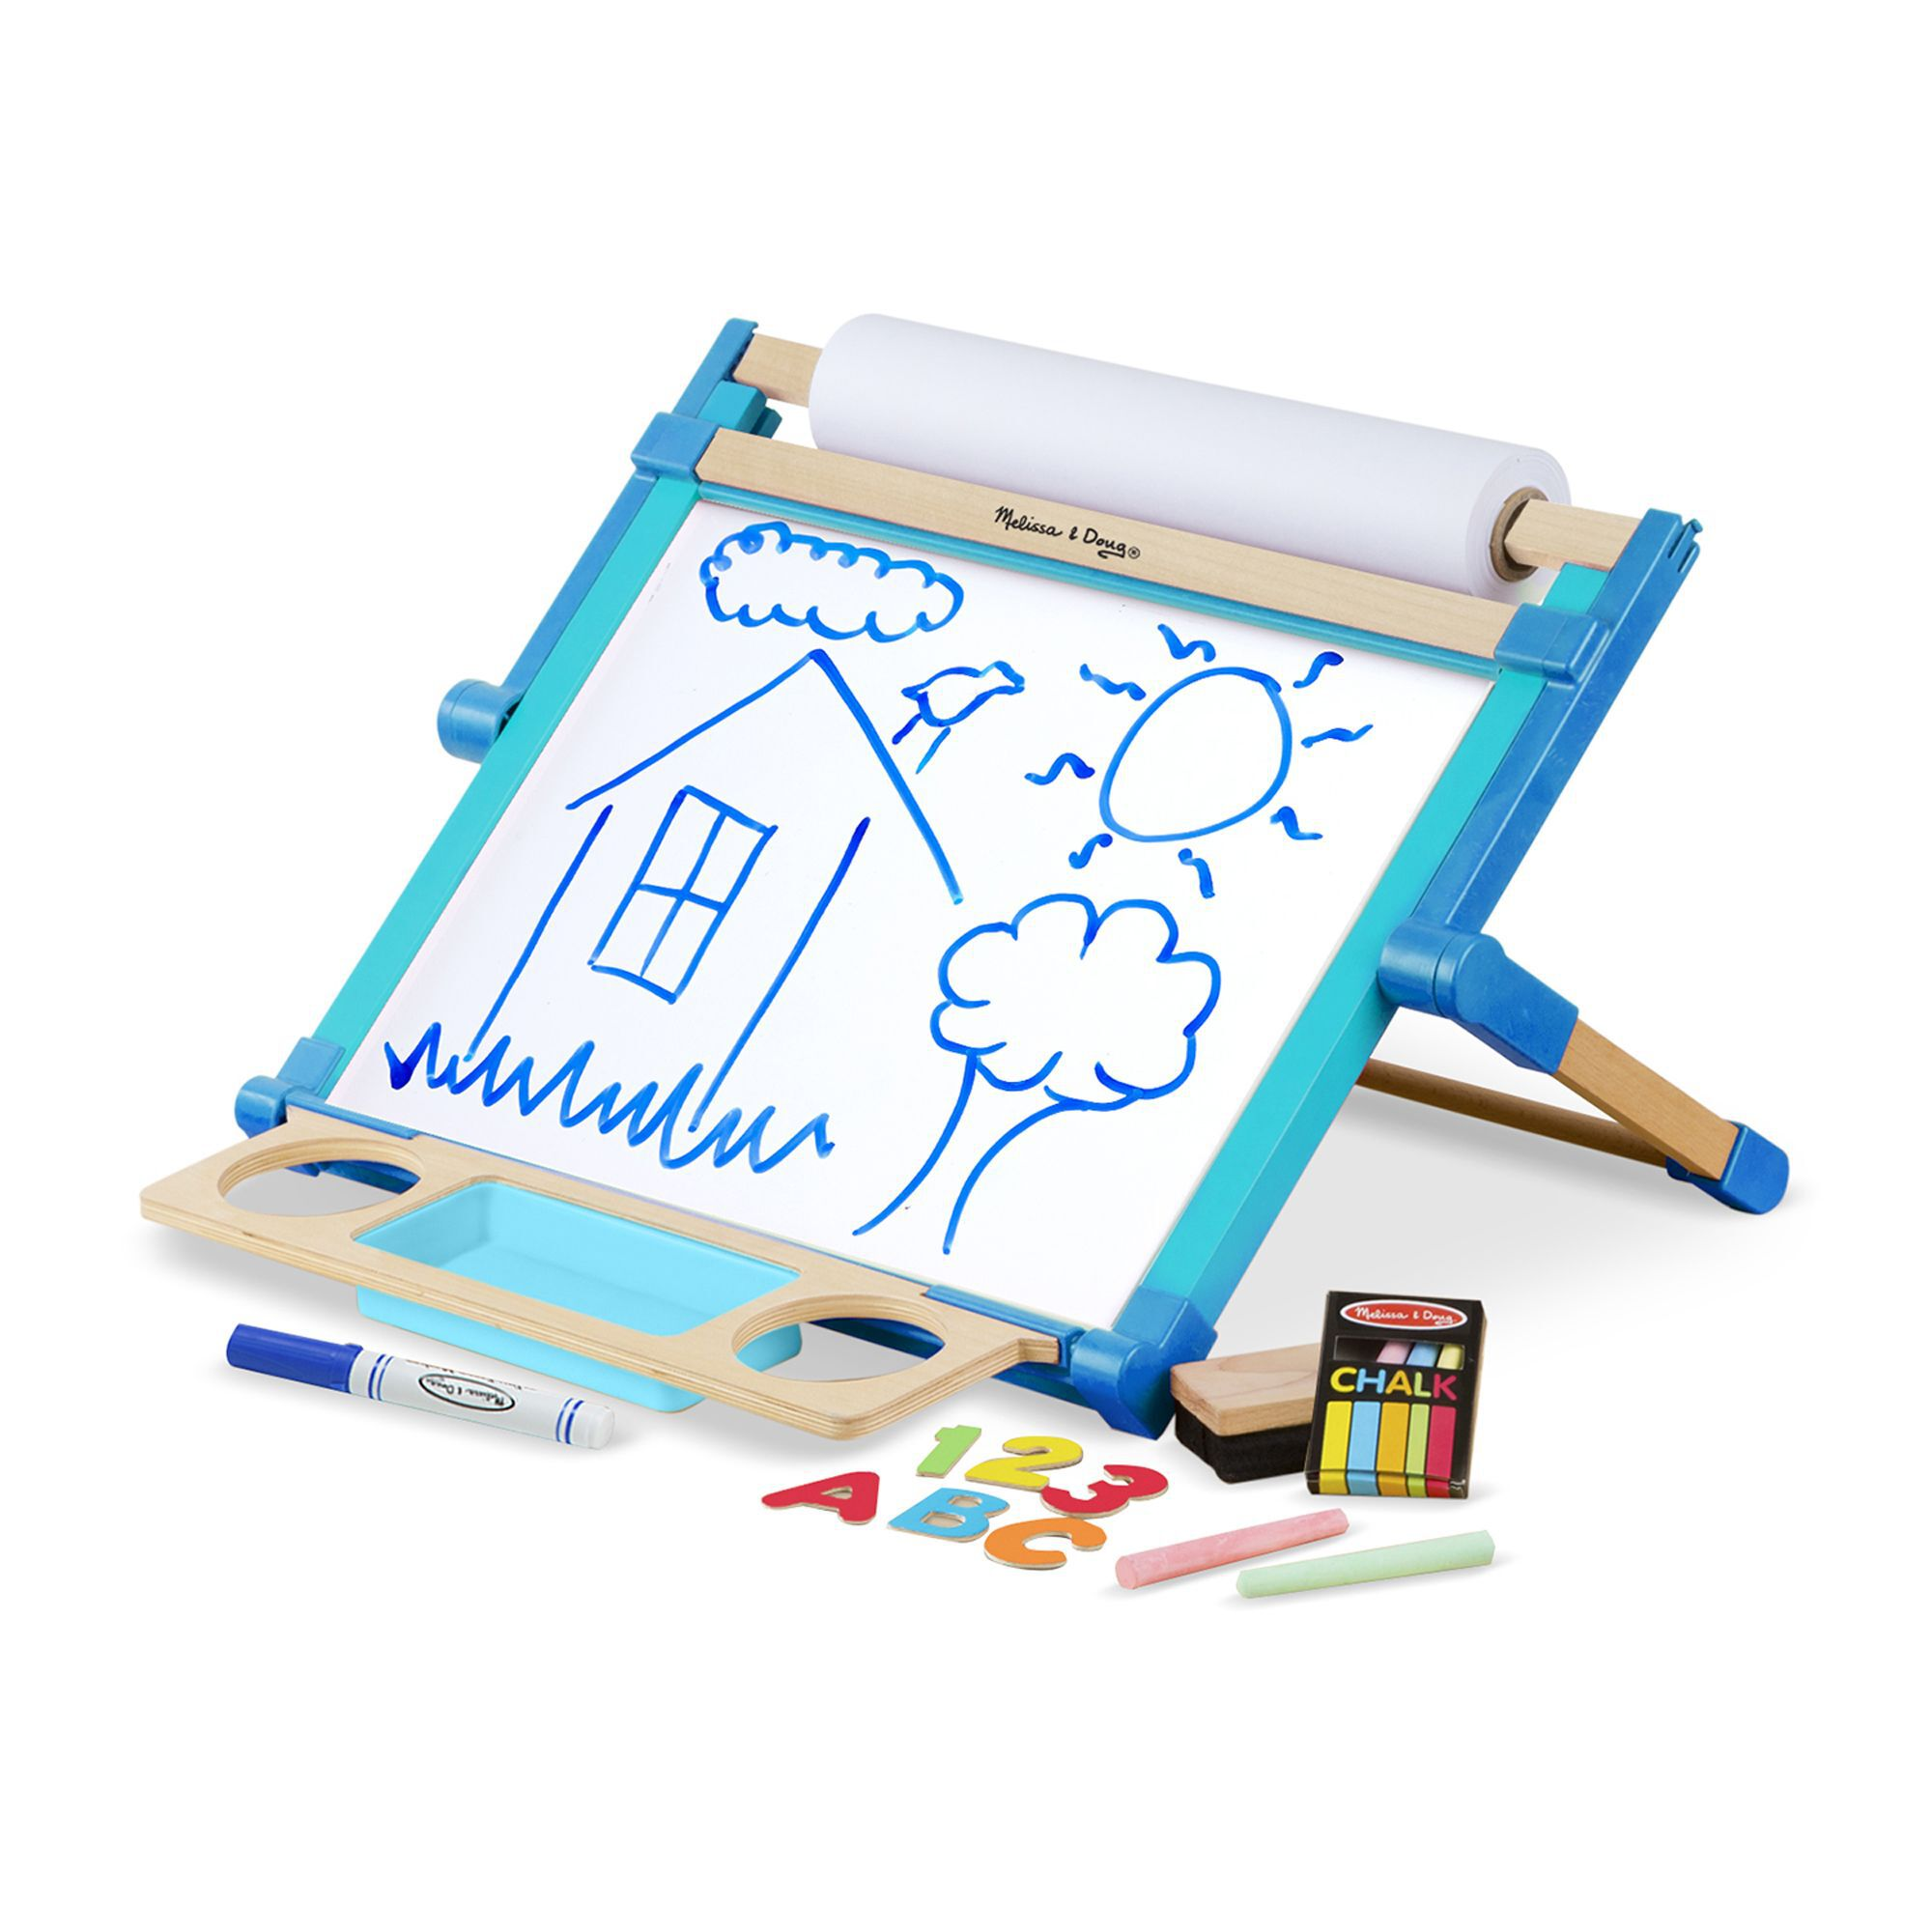 deluxe doublesided tabletop easel - Tabletop Easel